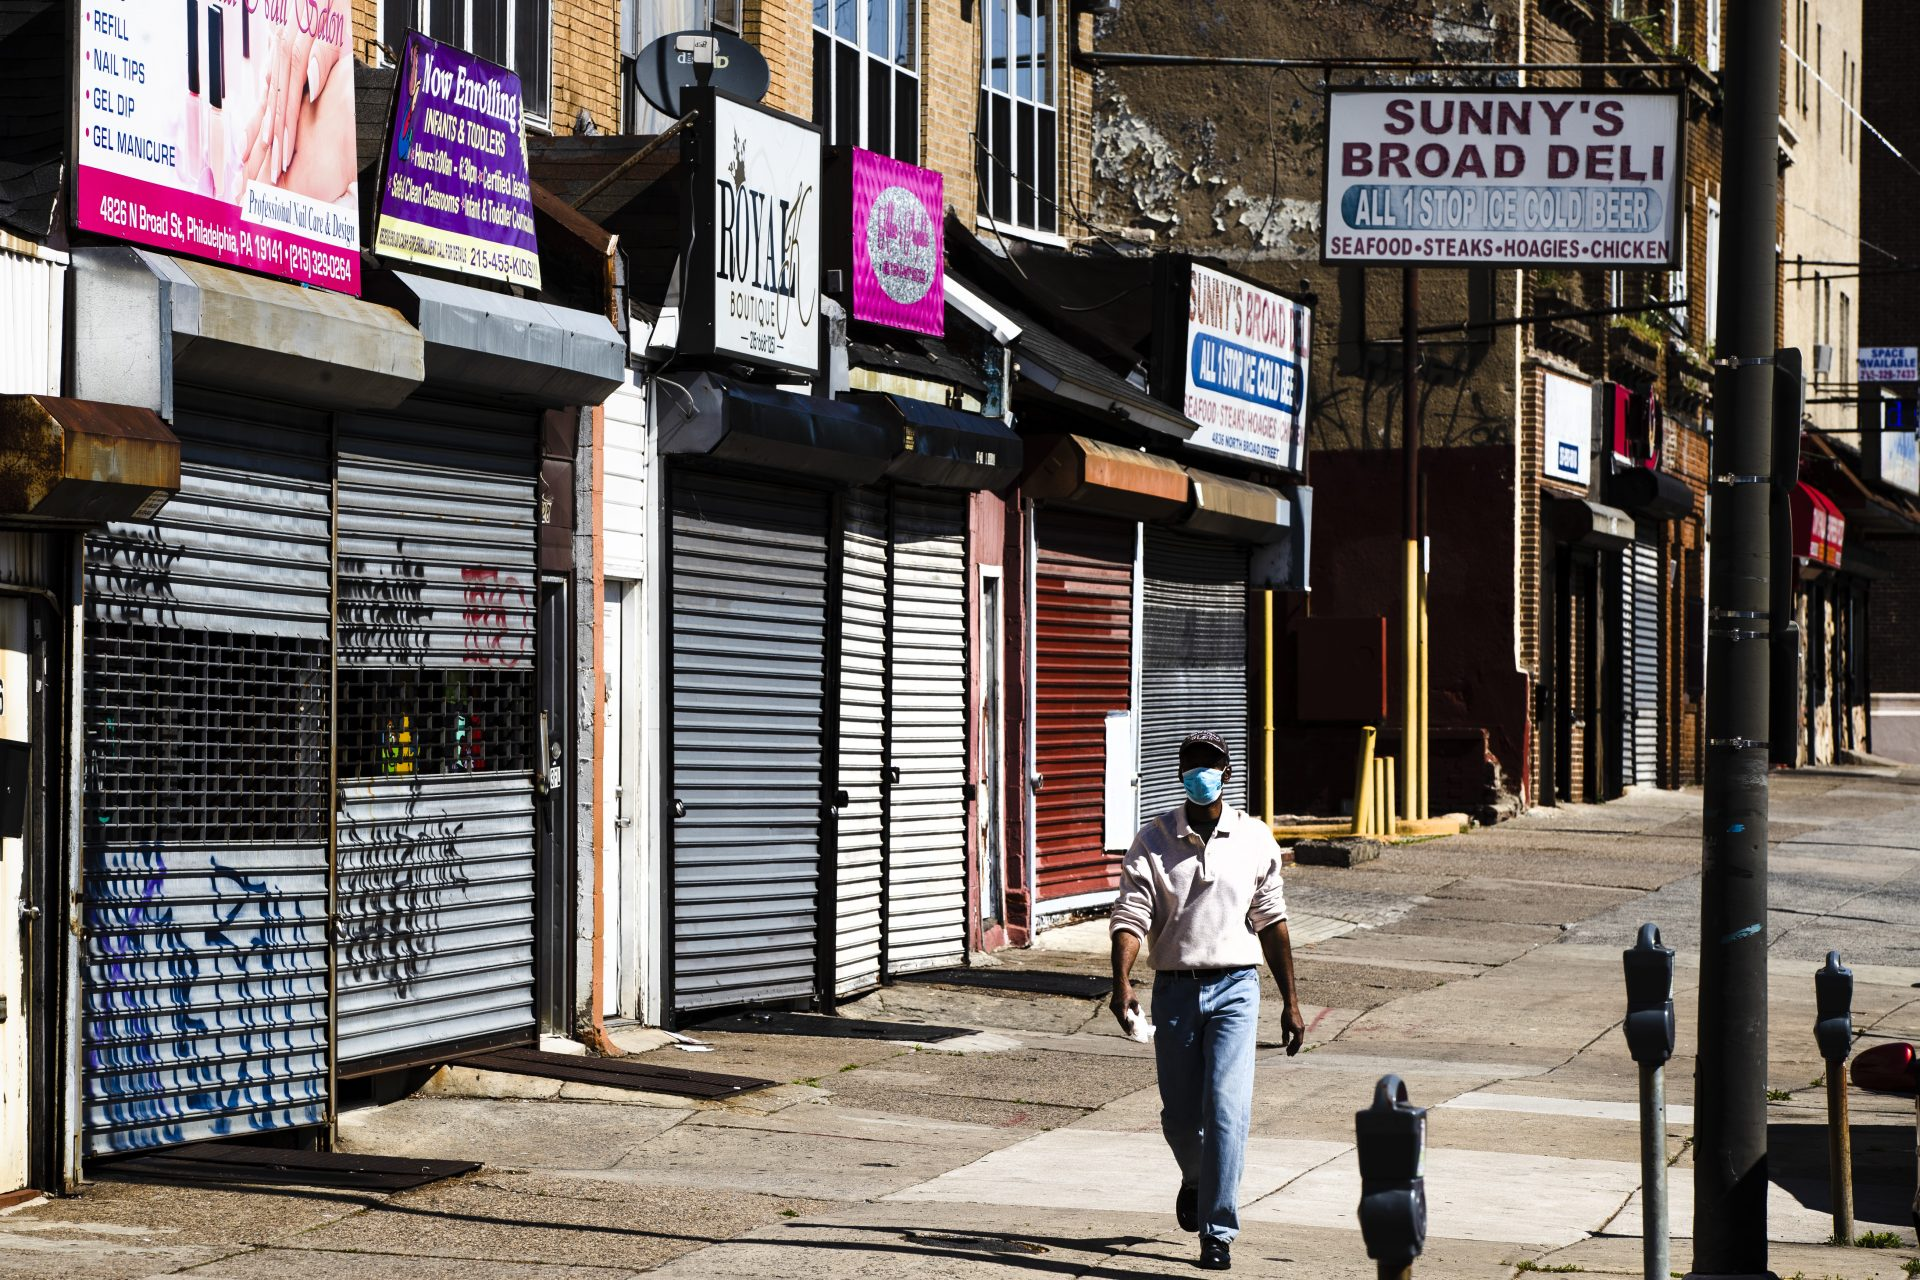 A person wearing a protective face mask as a precaution against the coronavirus walks past stuttered businesses in Philadelphia, Thursday, May 7, 2020. Nearly 3.2 million laid-off workers applied for unemployment benefits last week as the business shutdowns caused by the viral outbreak deepened the worst U.S. economic catastrophe in decades.